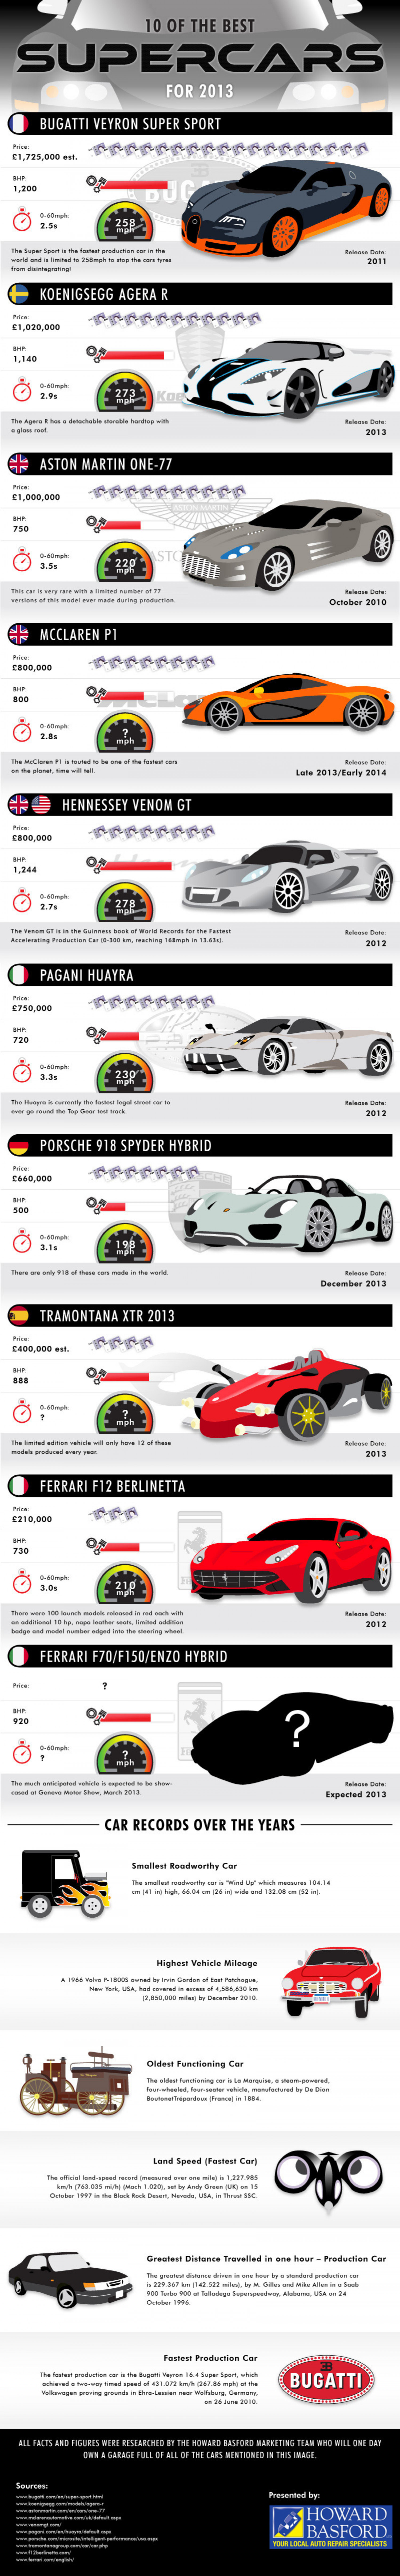 10 of the best Supercars for 2013 Infographic